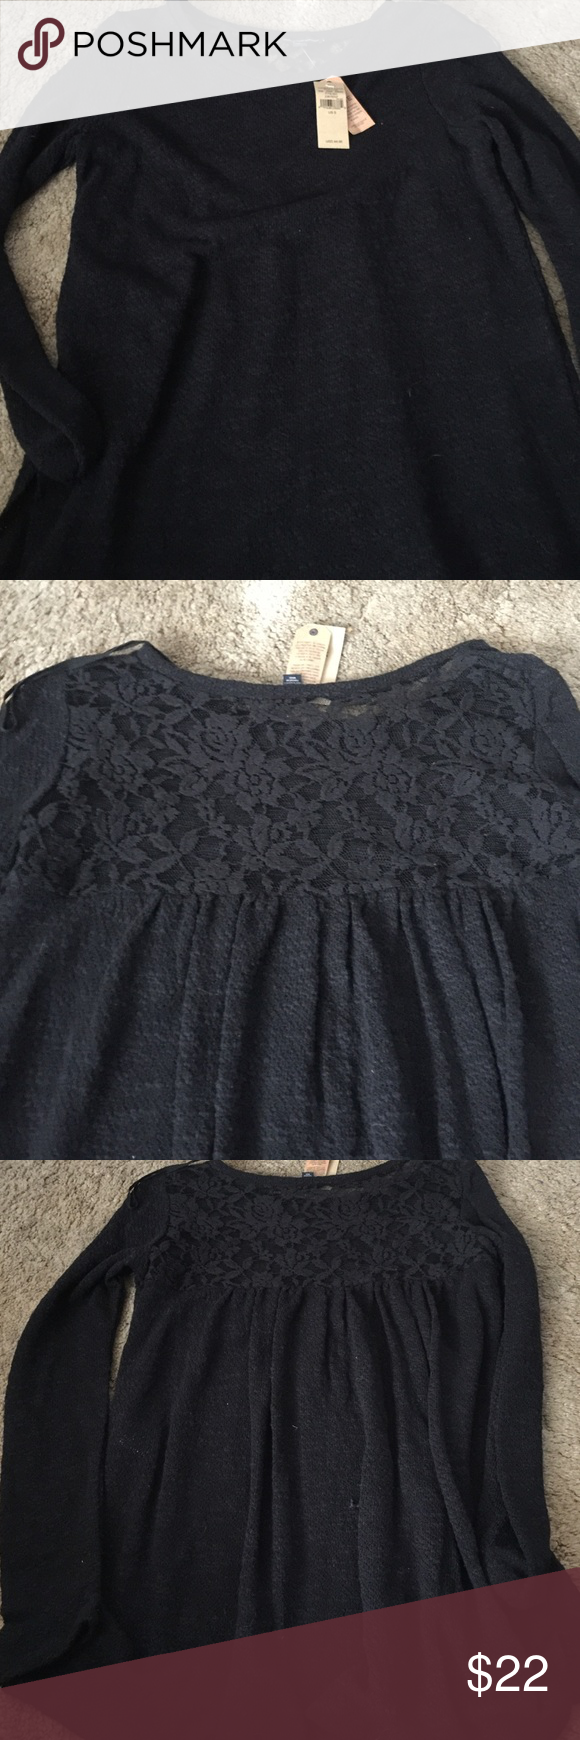 American Eagle Lace Back Sweater Never been worn! Very cute Sweater, with a lace back. NO TRADES. Price is negotiable American Eagle Outfitters Sweaters Crew & Scoop Necks